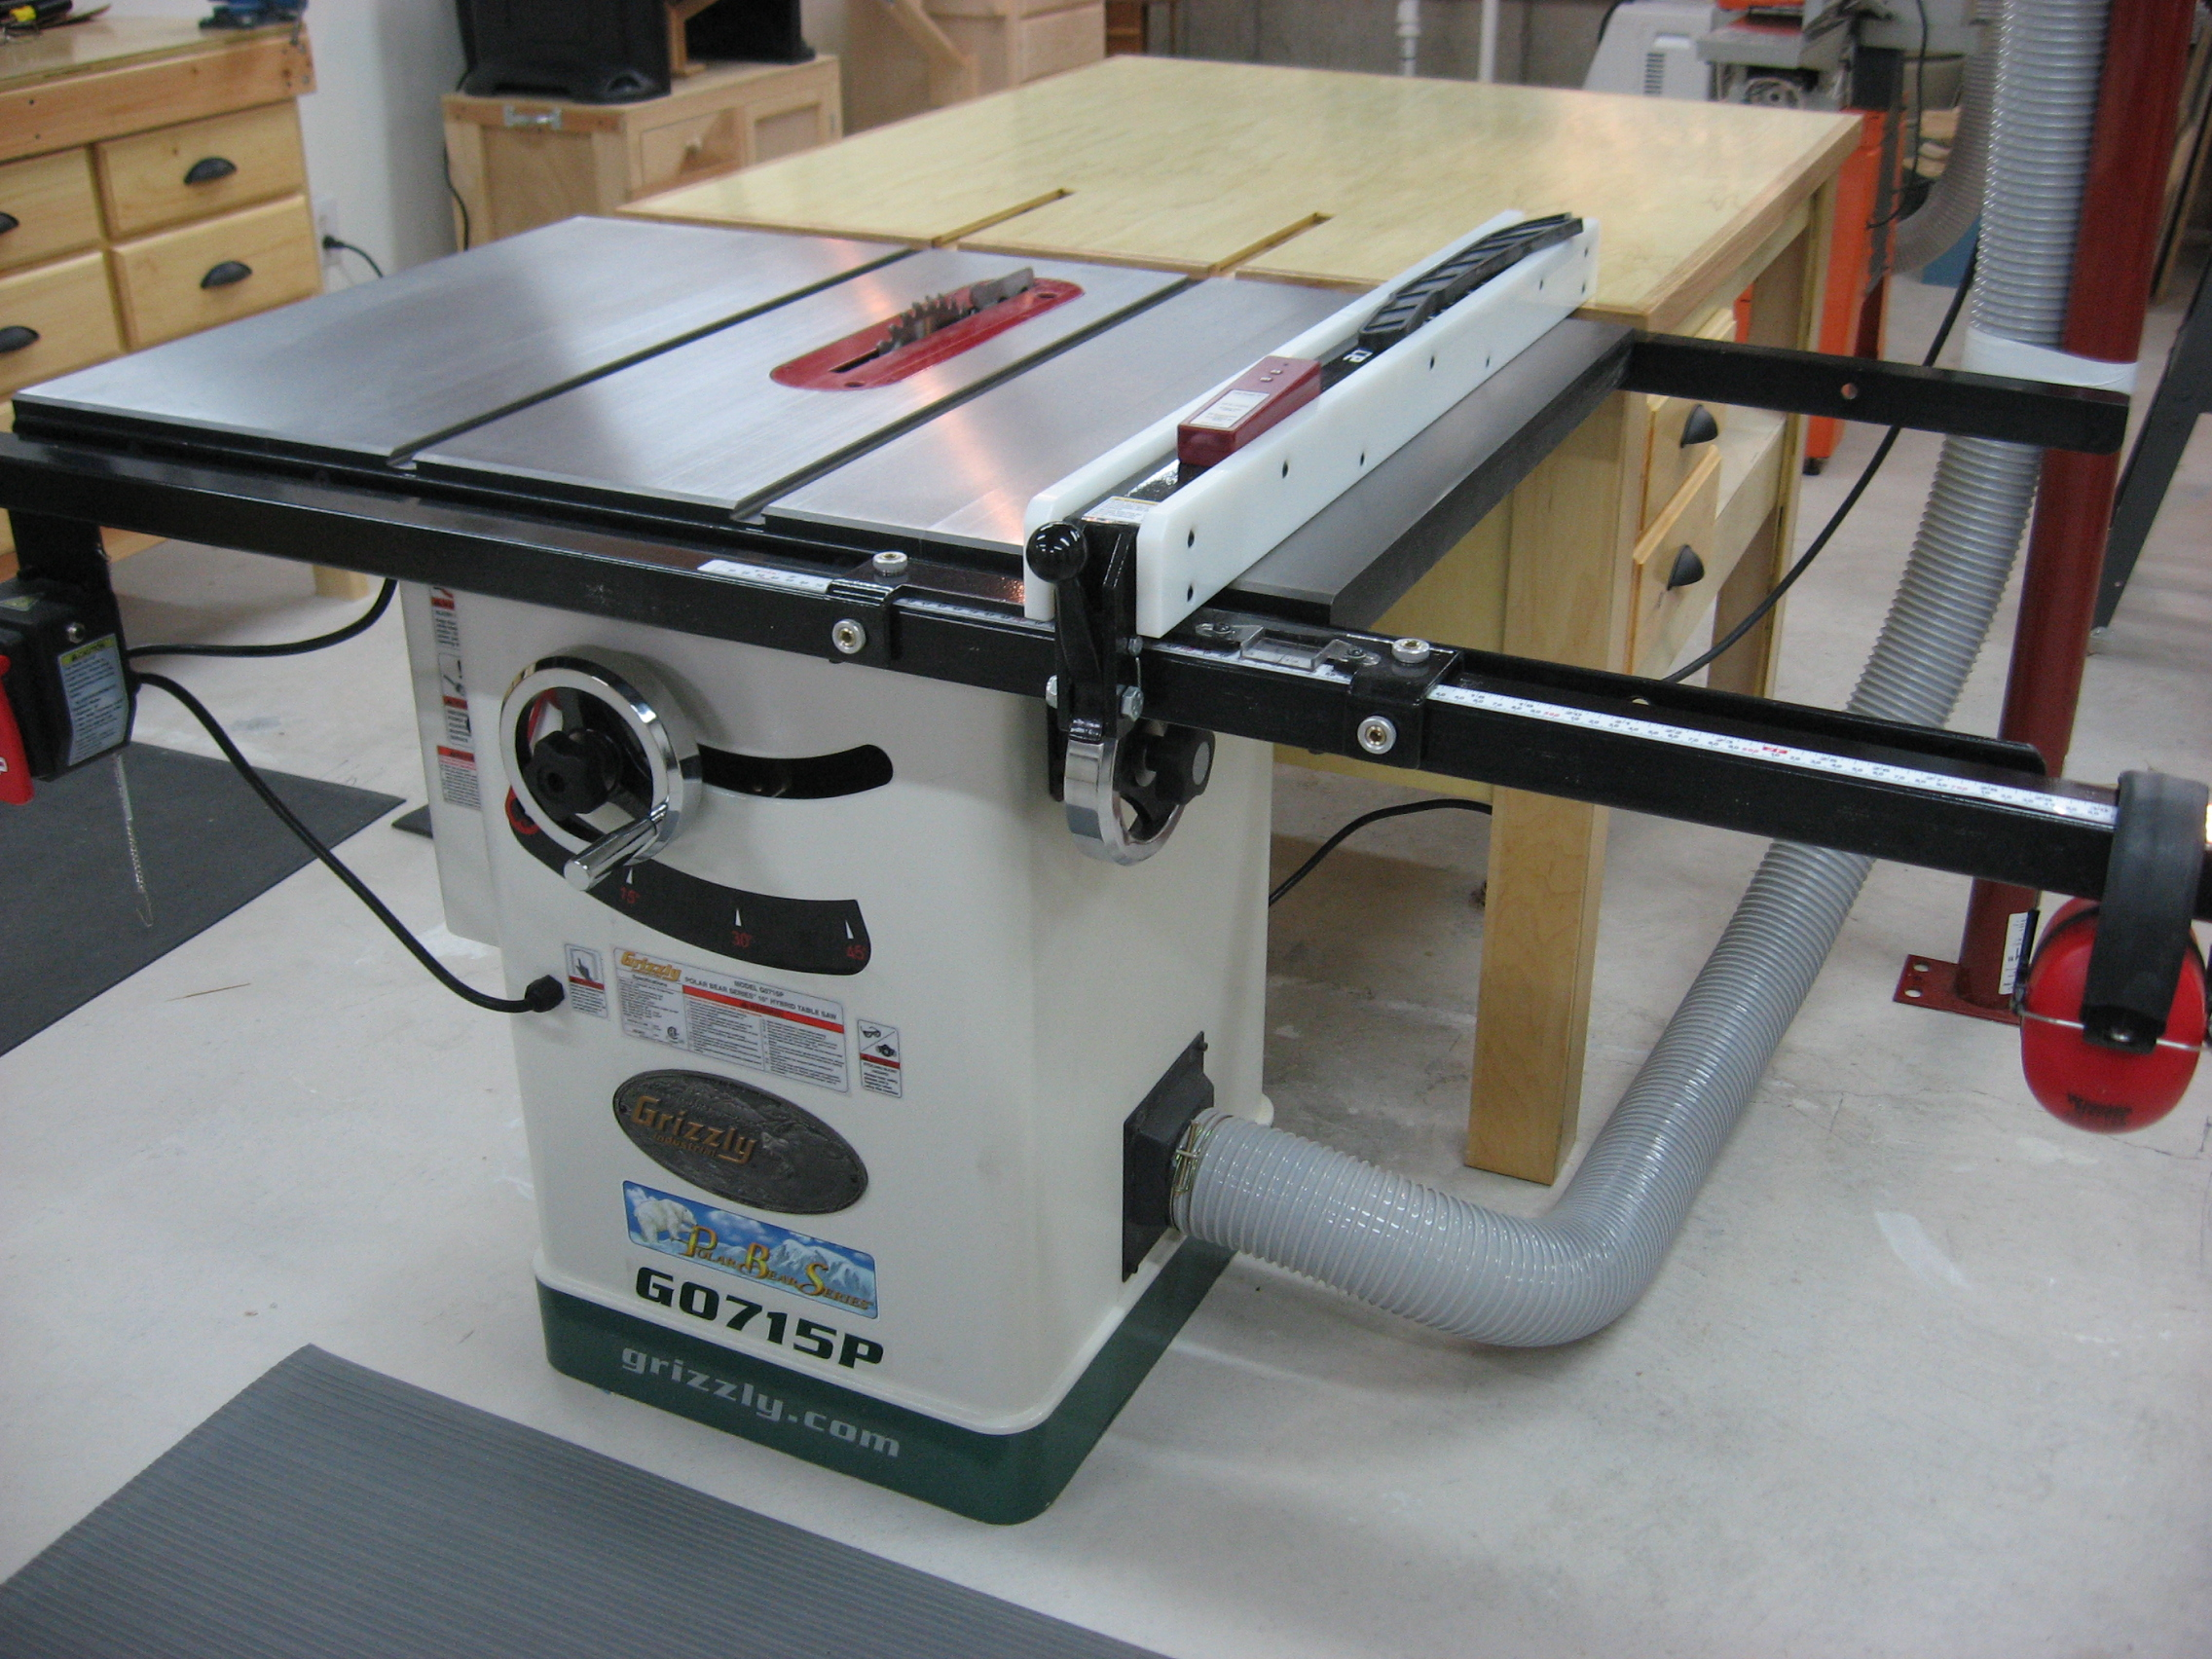 Creekside woodshop the workshop grizzly table saw g0715p keyboard keysfo Images